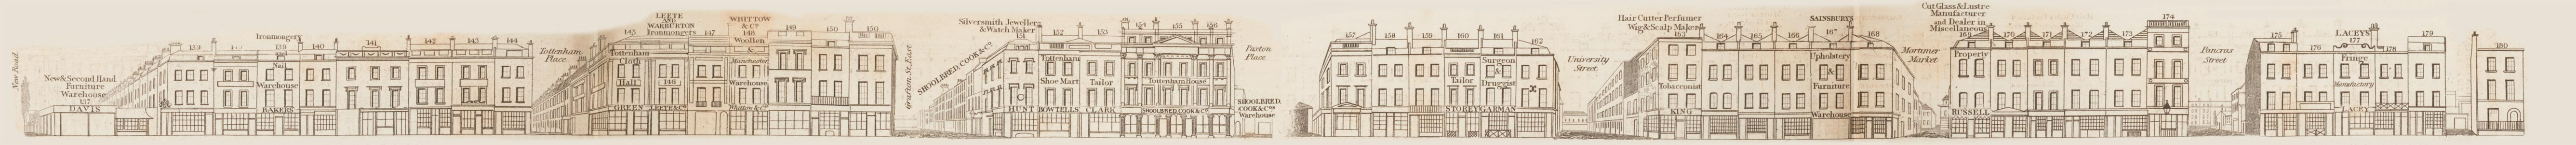 map - Tallis's London street views : No. 49. Tottenham Court Road, division 1 (west)